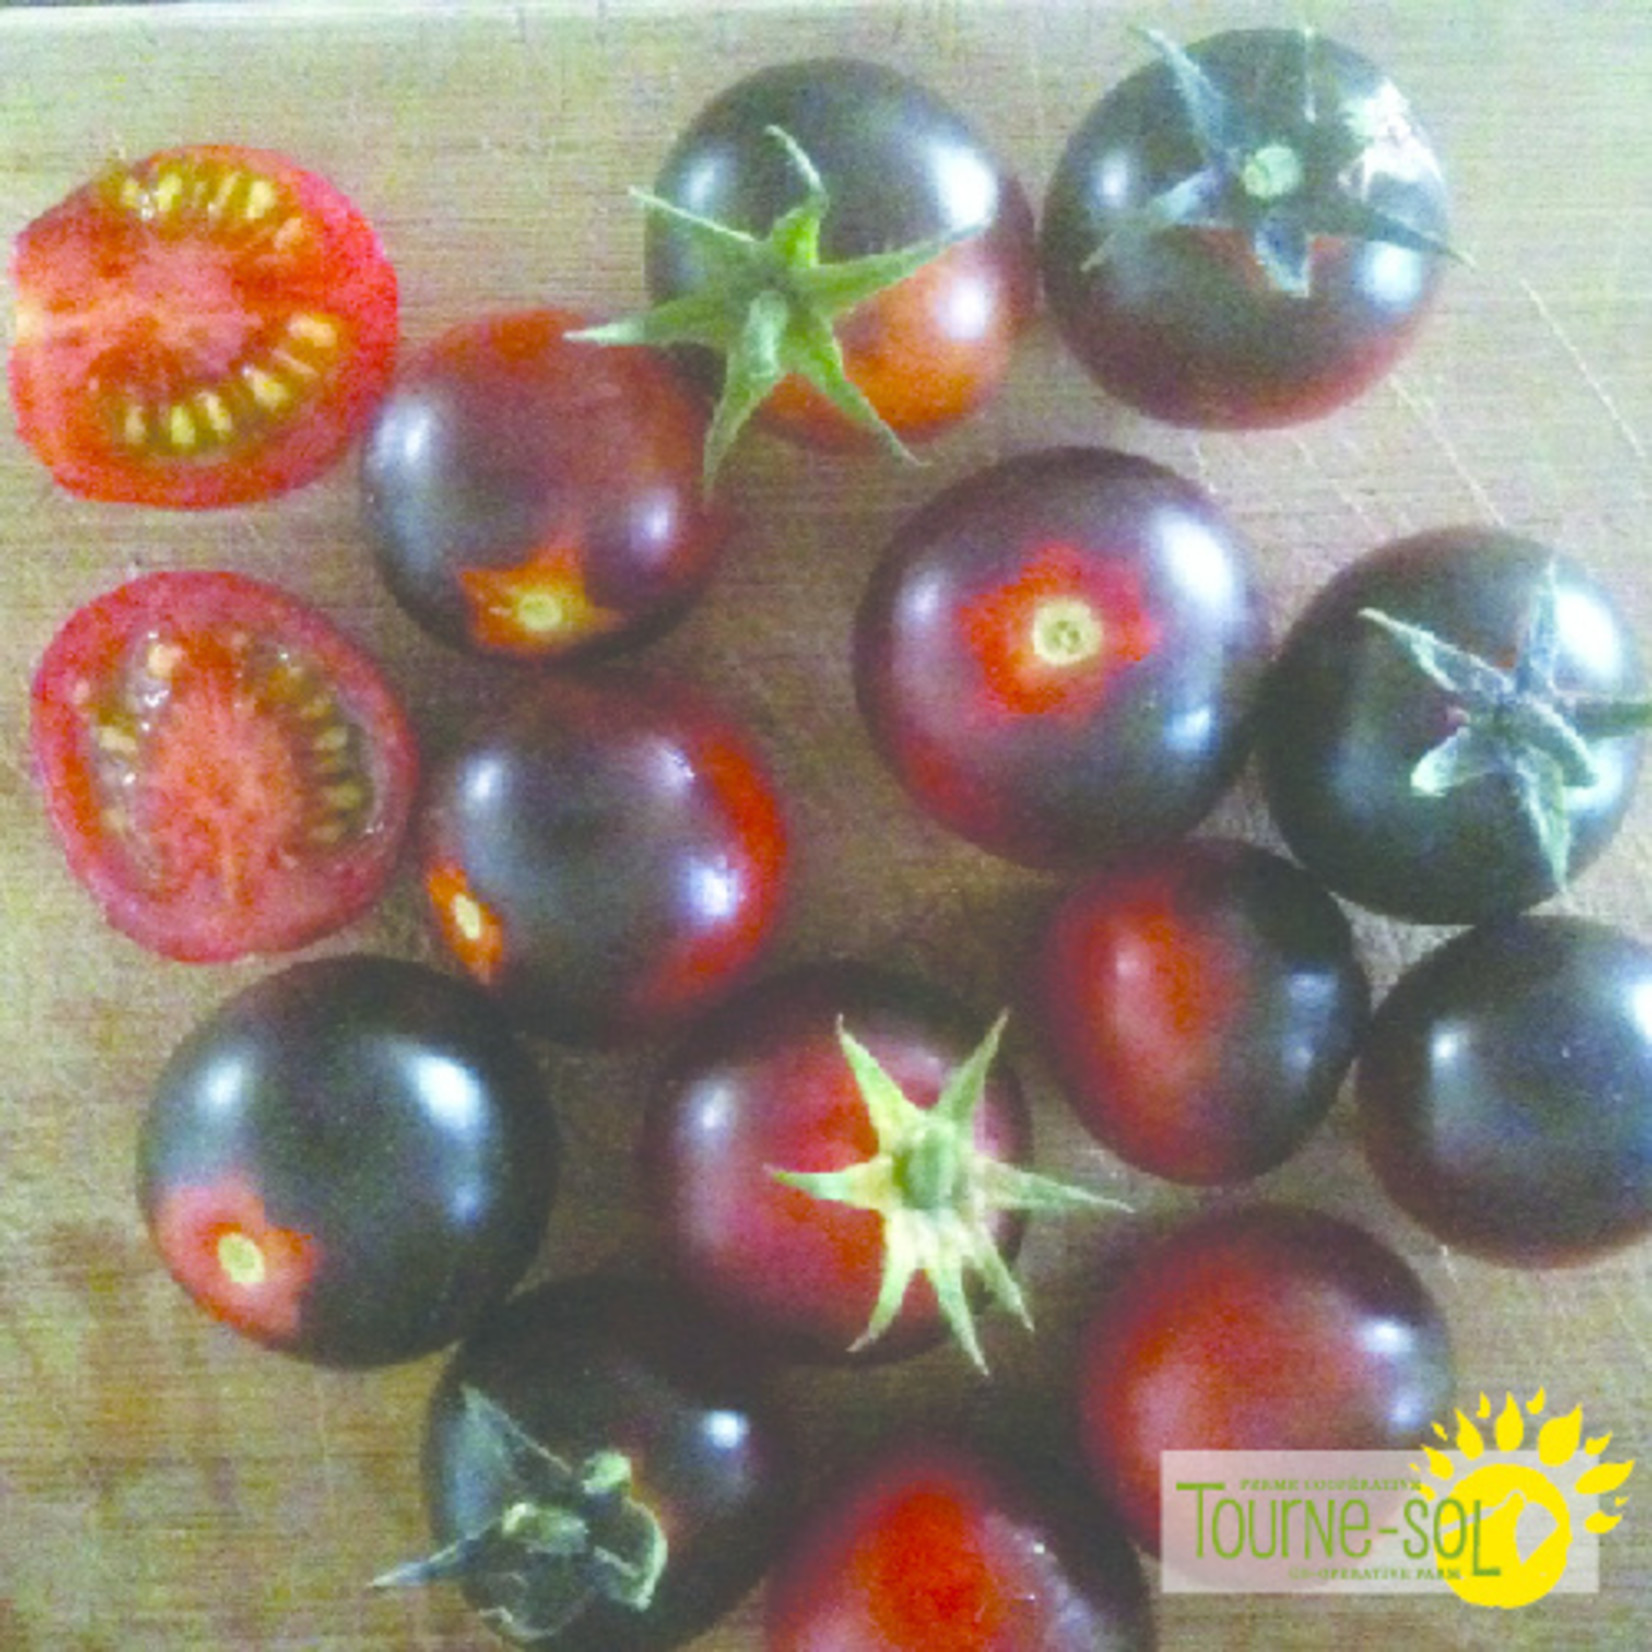 Tourne-Sol Dancing with Smurfs blue cherry tomato